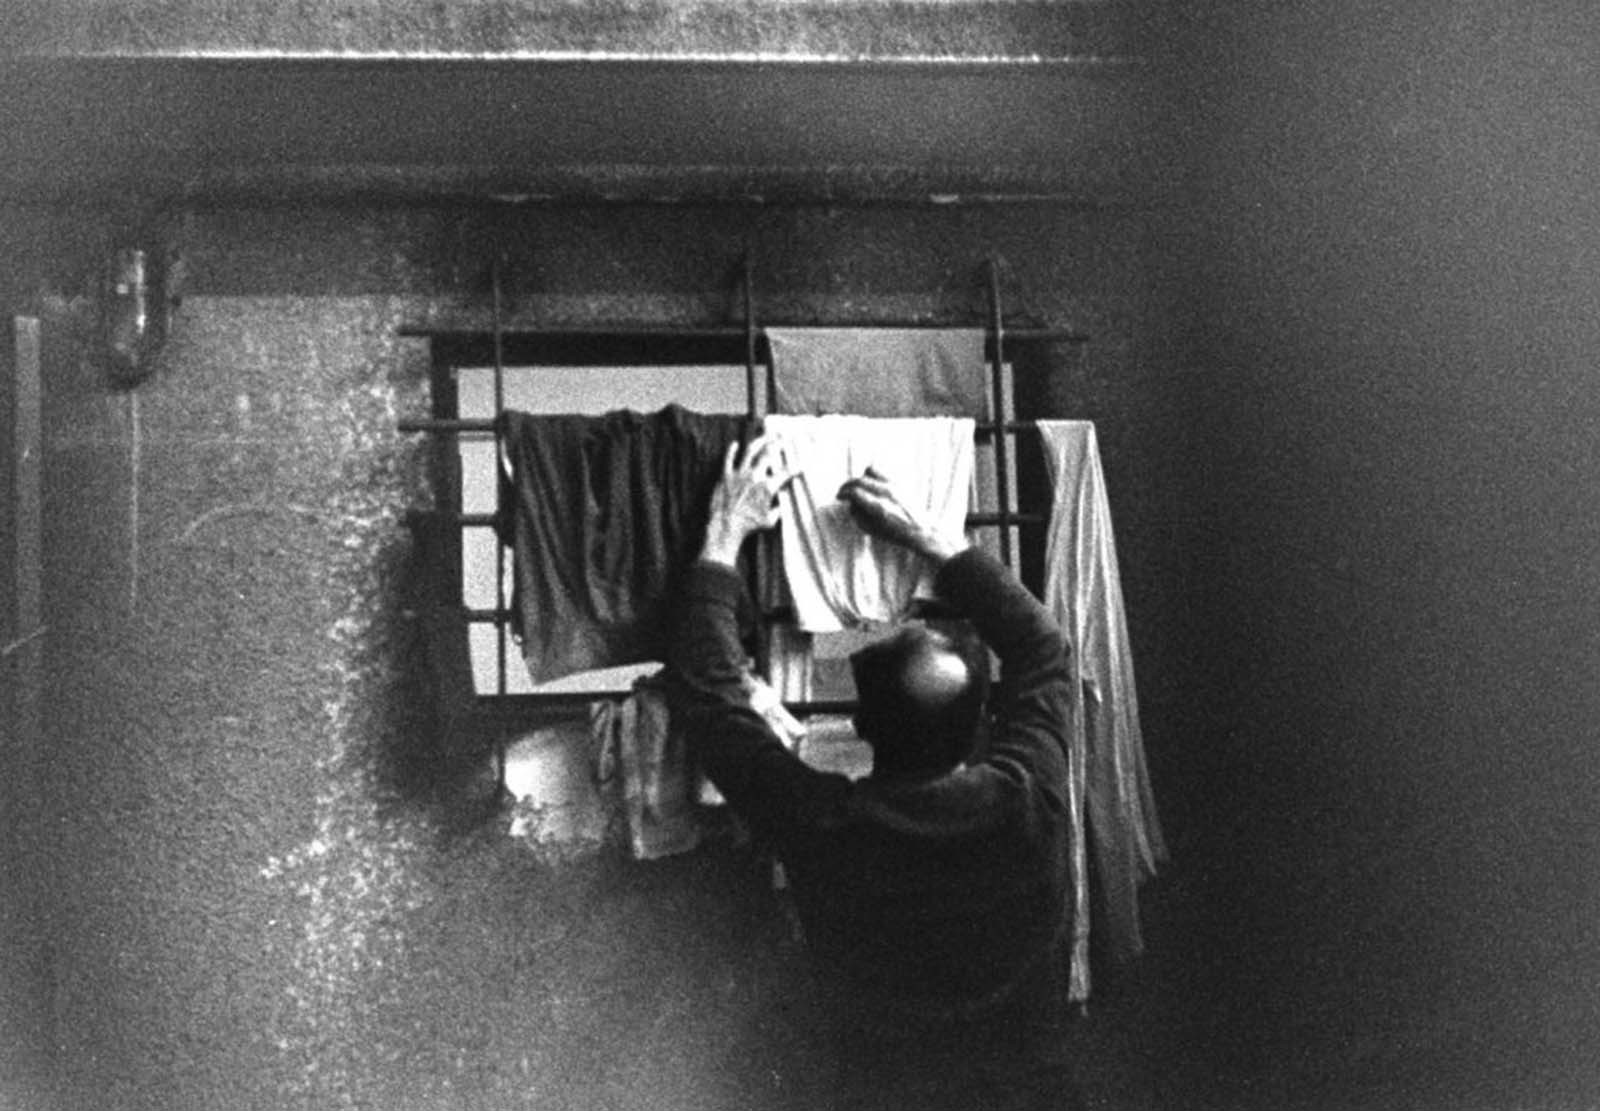 Eichmann draped shirts and underwear he had washed himself over bars of a window.